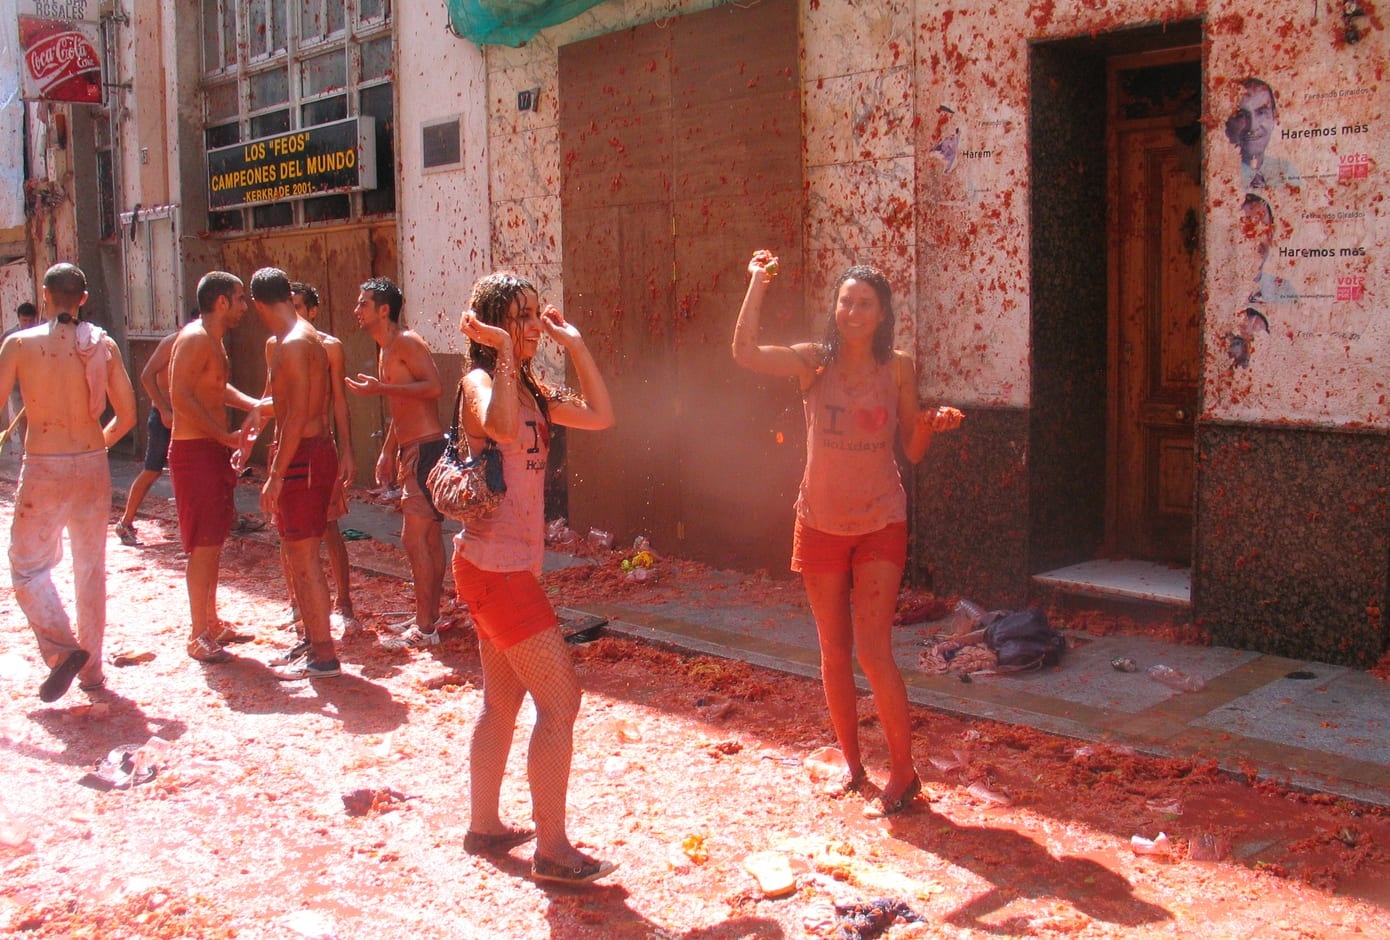 Two girls and a group of male friends covered in tomato juice during La Tomatina, in Spain.